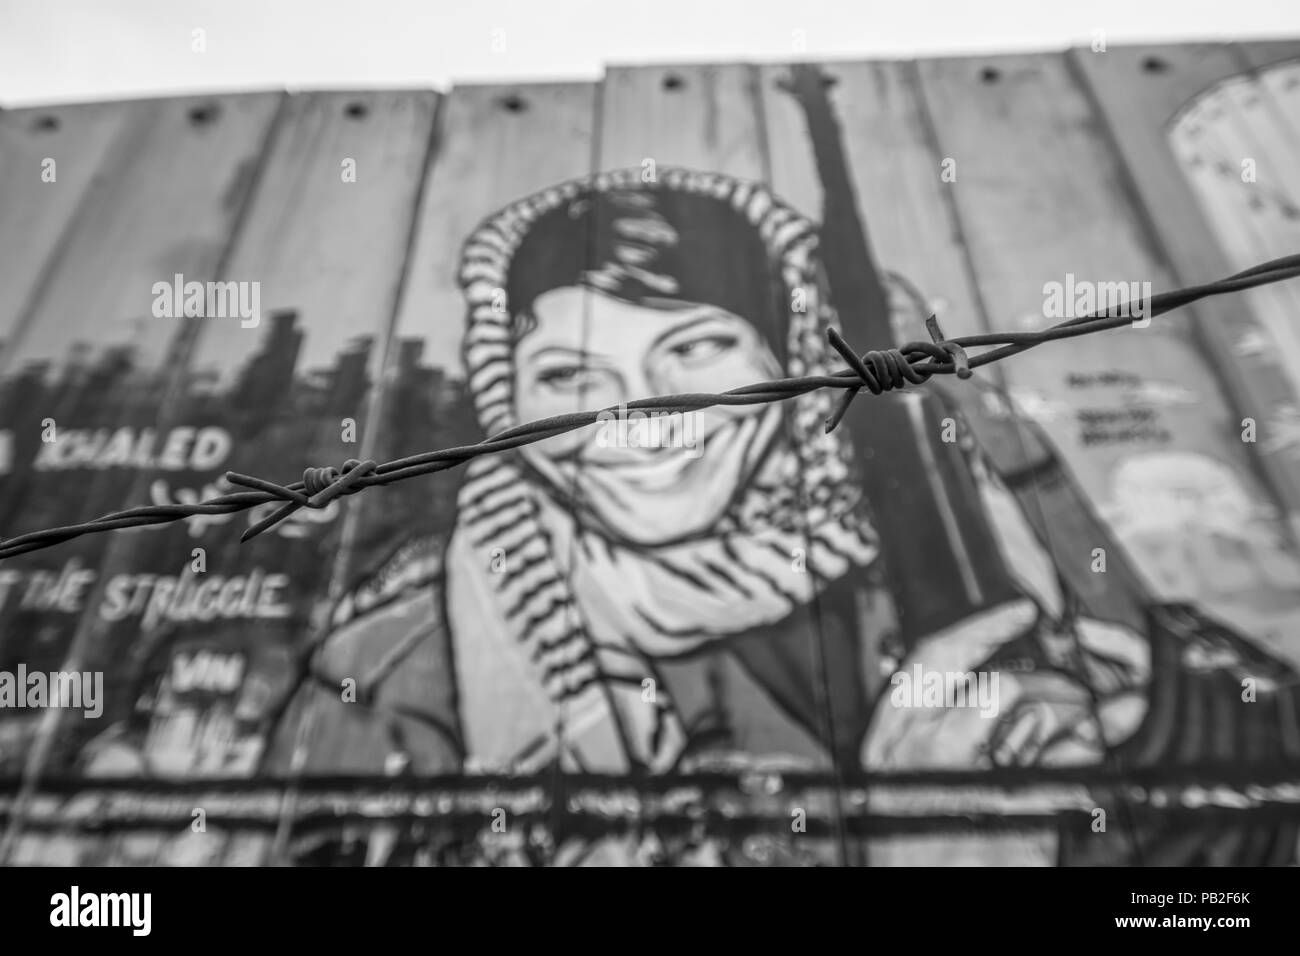 Jerusalem, Israel - separation barriers have been part of Palestine daily life in the last 20 years. Here in particular a painting on the wall - Stock Image